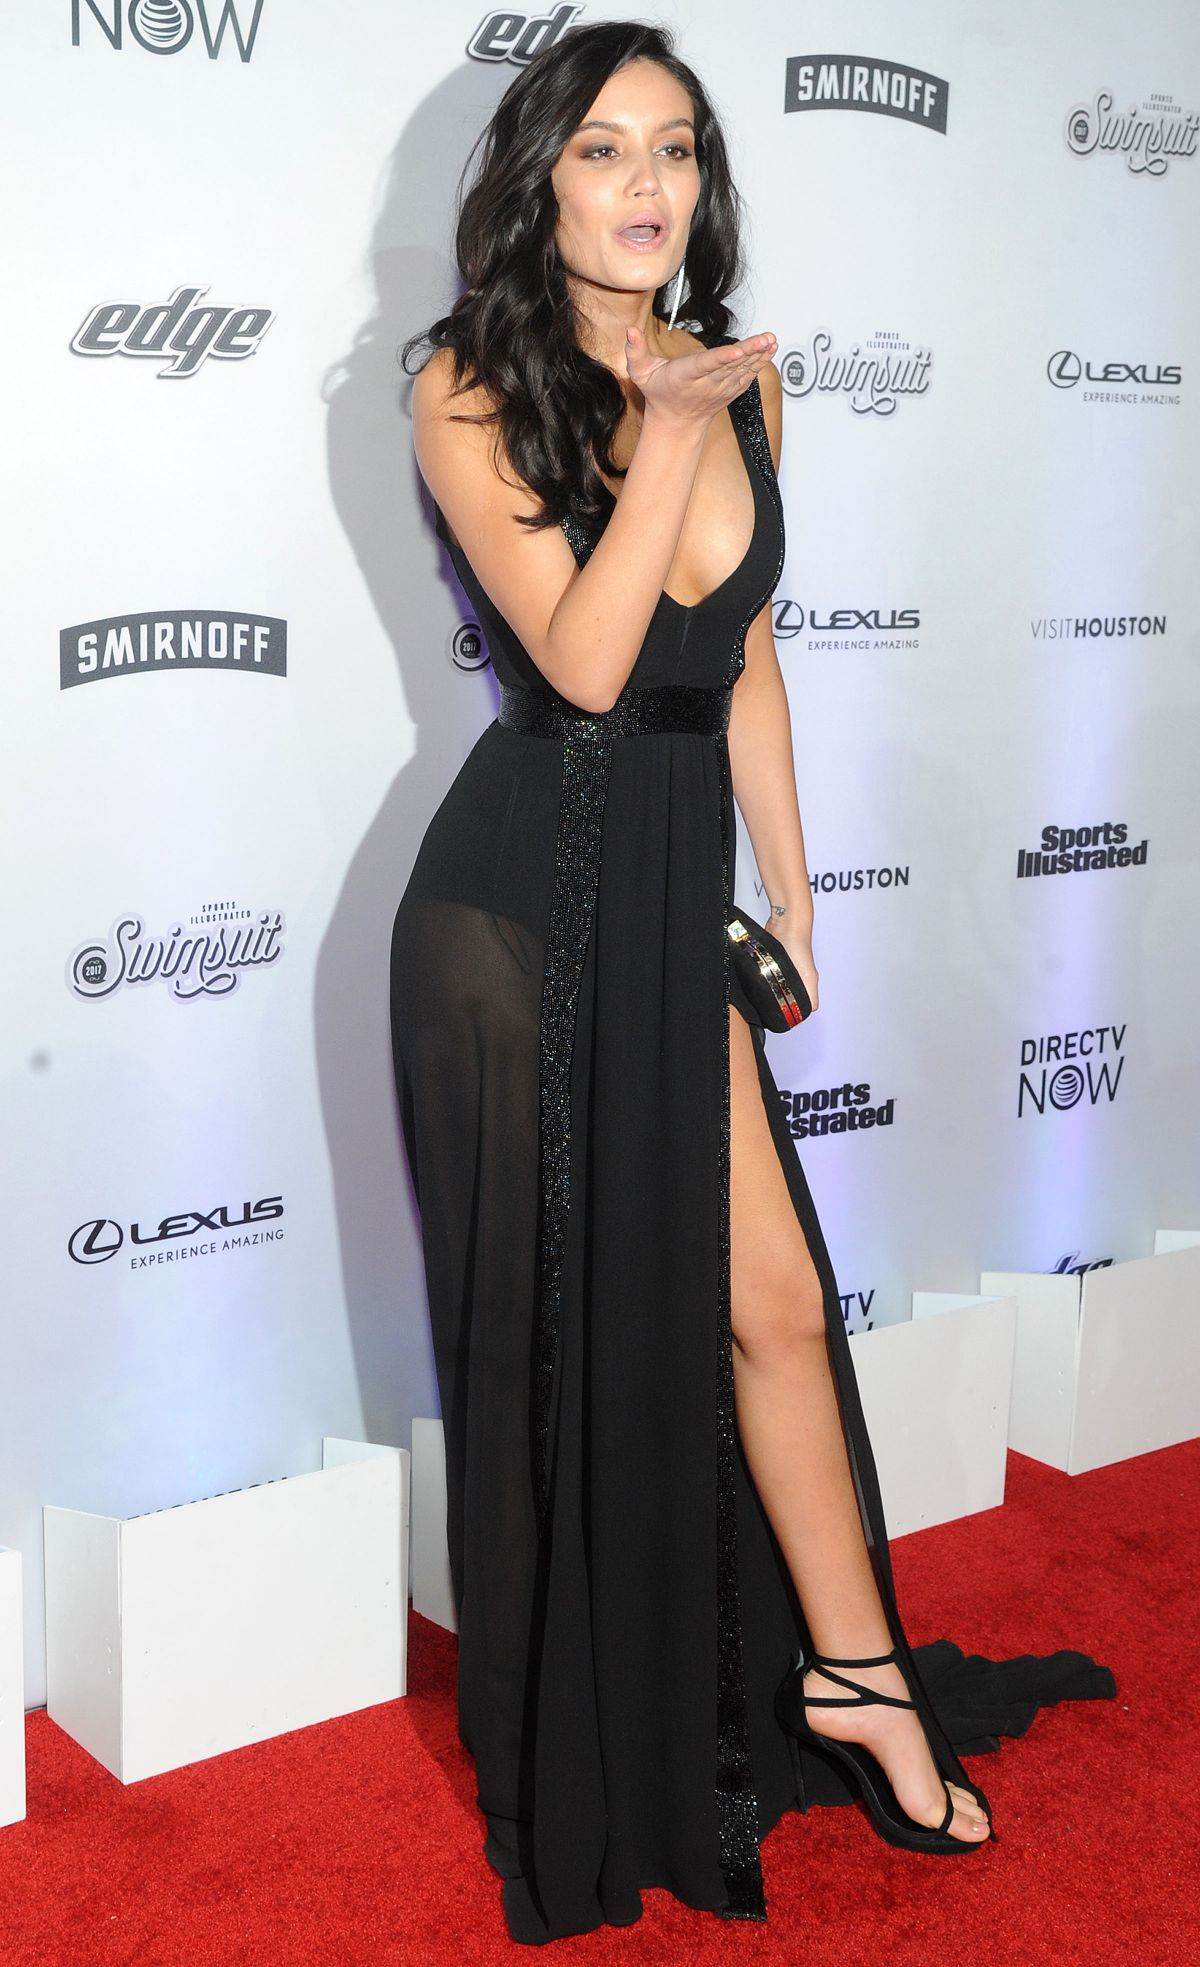 ANNE DE PAULA at Sports Illustrated Swimsuit Edition Launch